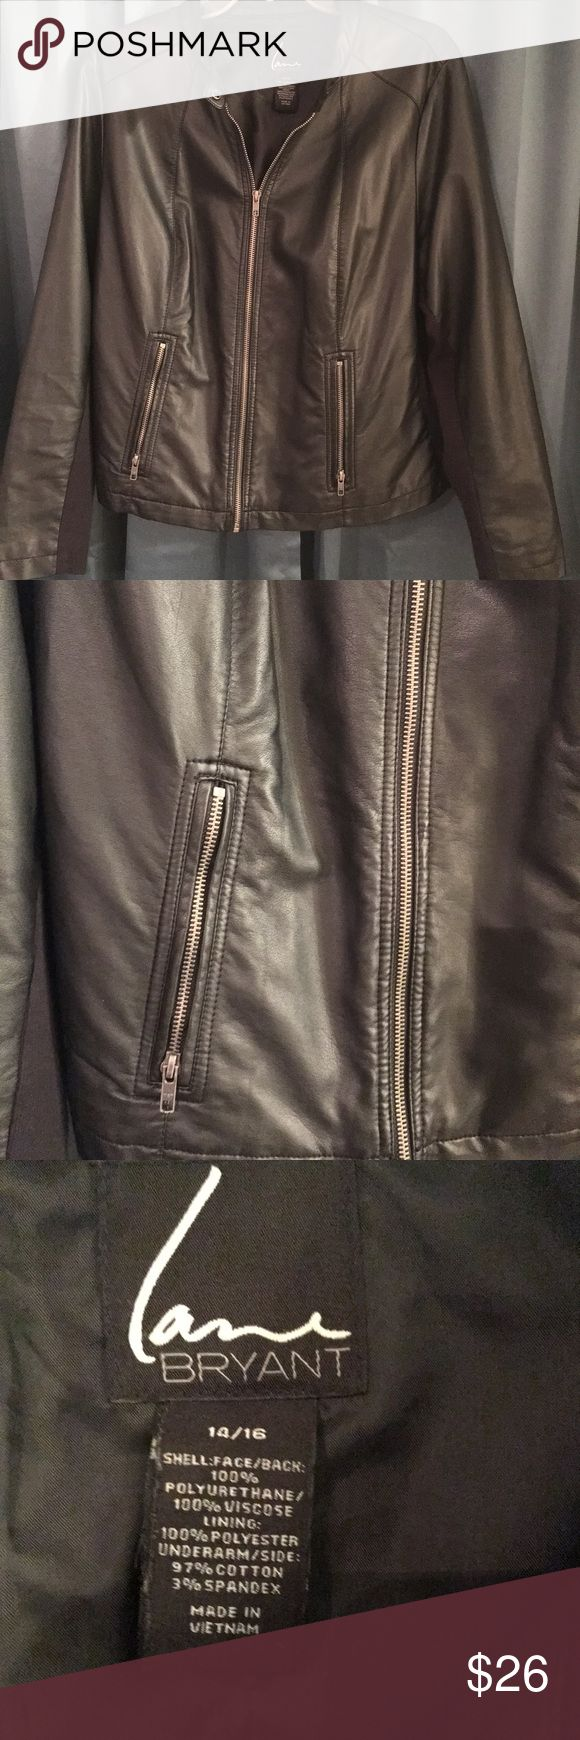 Lane Bryant Faux leather Moto Jacket EUC. All zipper fully functional. In excellent condition, fully lined, snaps closed at the throat;  for extra warmth, pockets in front, unzip. Sized 14/16. Has a cotton poly spandex panel on the inside of the arms and where the arms lay against rib cage for extra stretch. Very comfortable, goes with just about any outfit. Love this jacket, have 2 new ones and need closet space! ✅ Reasonable offers considered  📦📫  Same or next day shipping from…